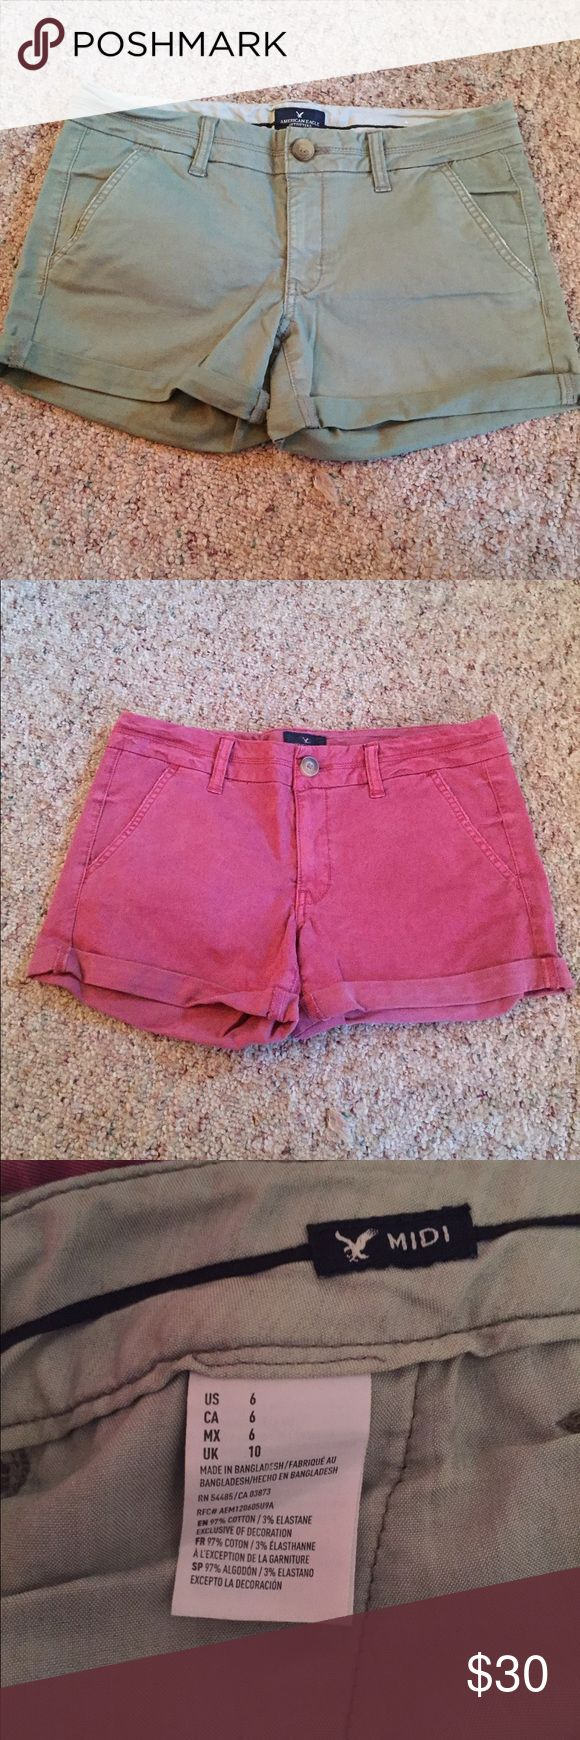 Olive and Maroon Shorts! No tags but never been worn. But size 6. American Eagle. American Eagle Outfitters Shorts